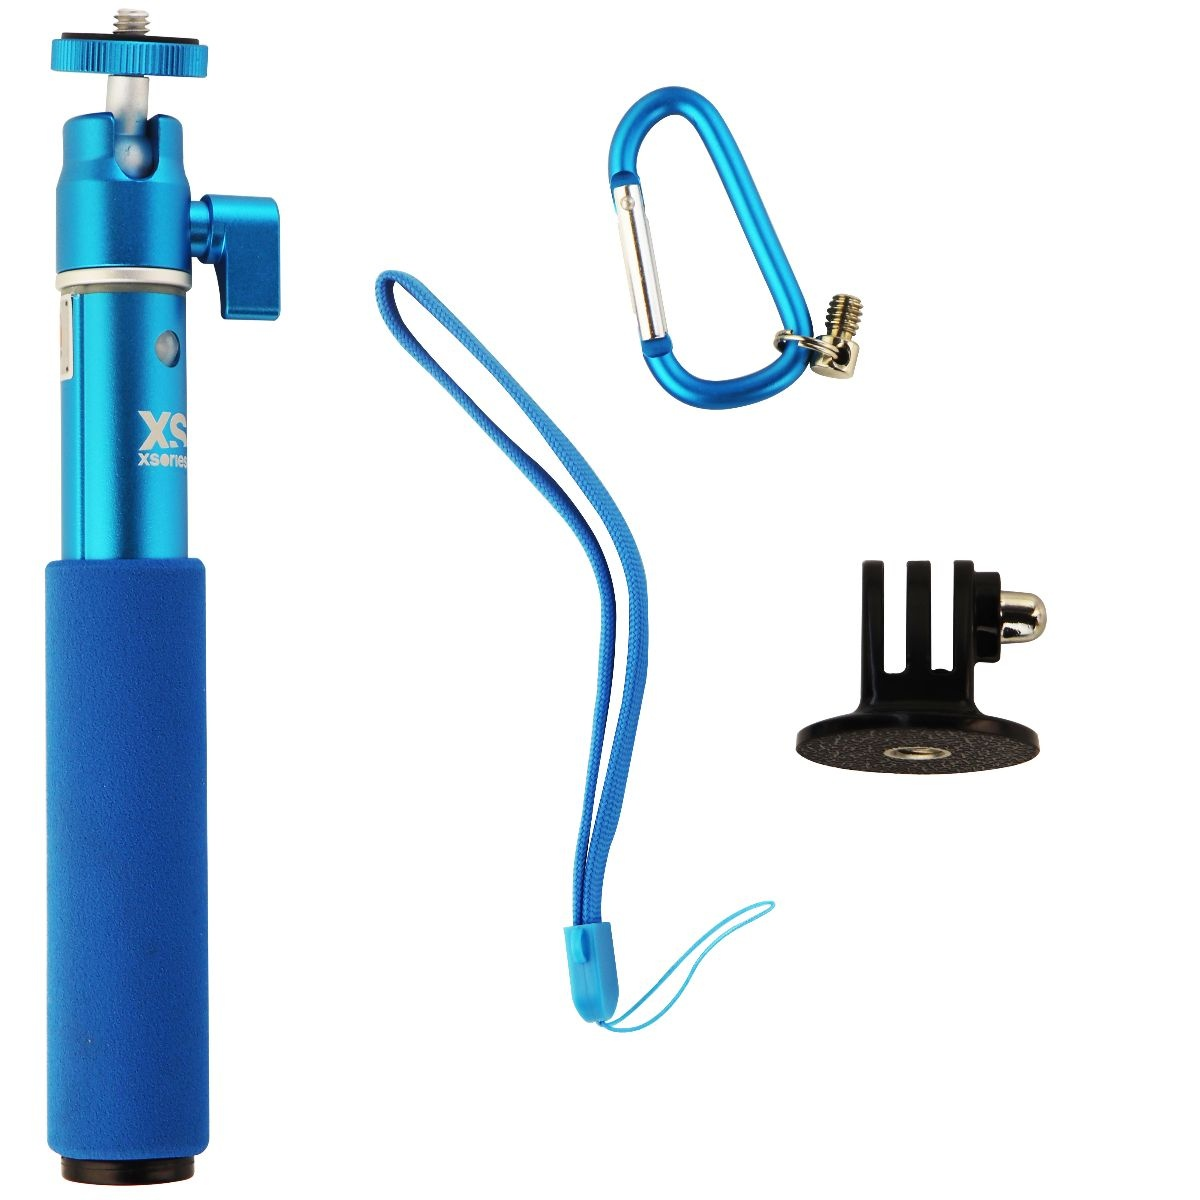 XSories U-Shot 19-in Telescopic Pole w/ 1/4-inch Mount and GoPro Adapter - Blue